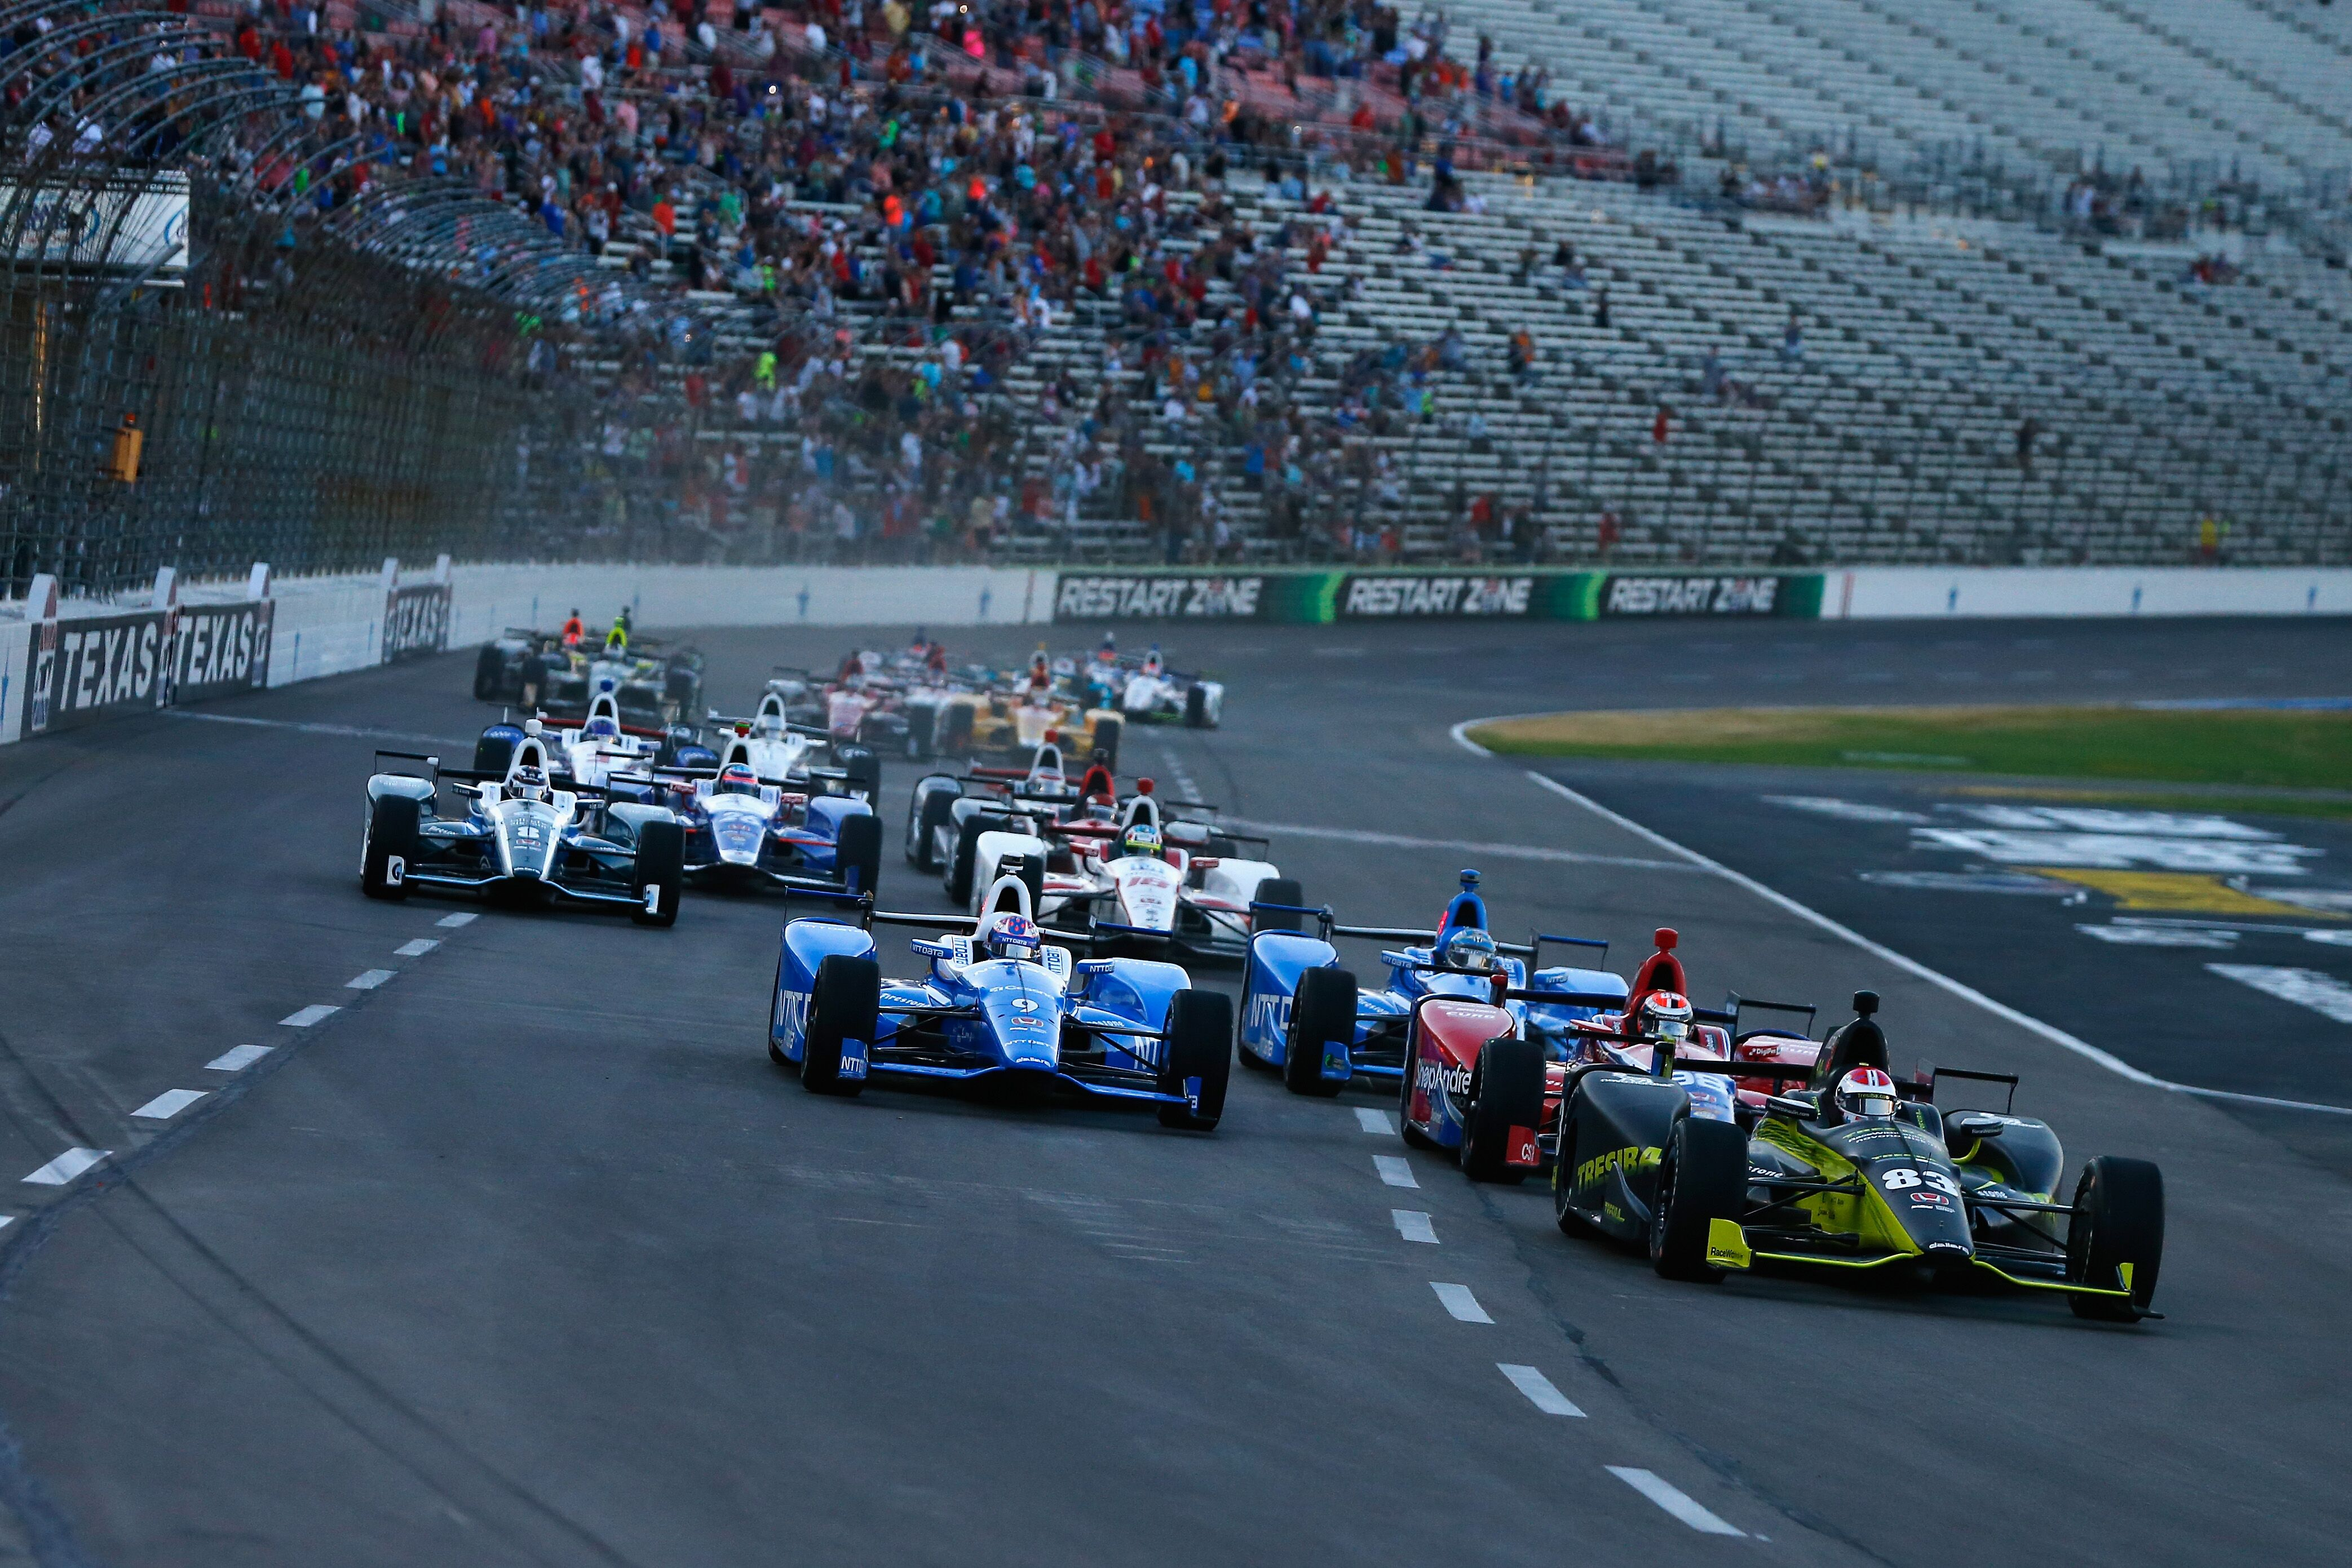 Indycar Tv Schedule For 2018 Season Officially Released